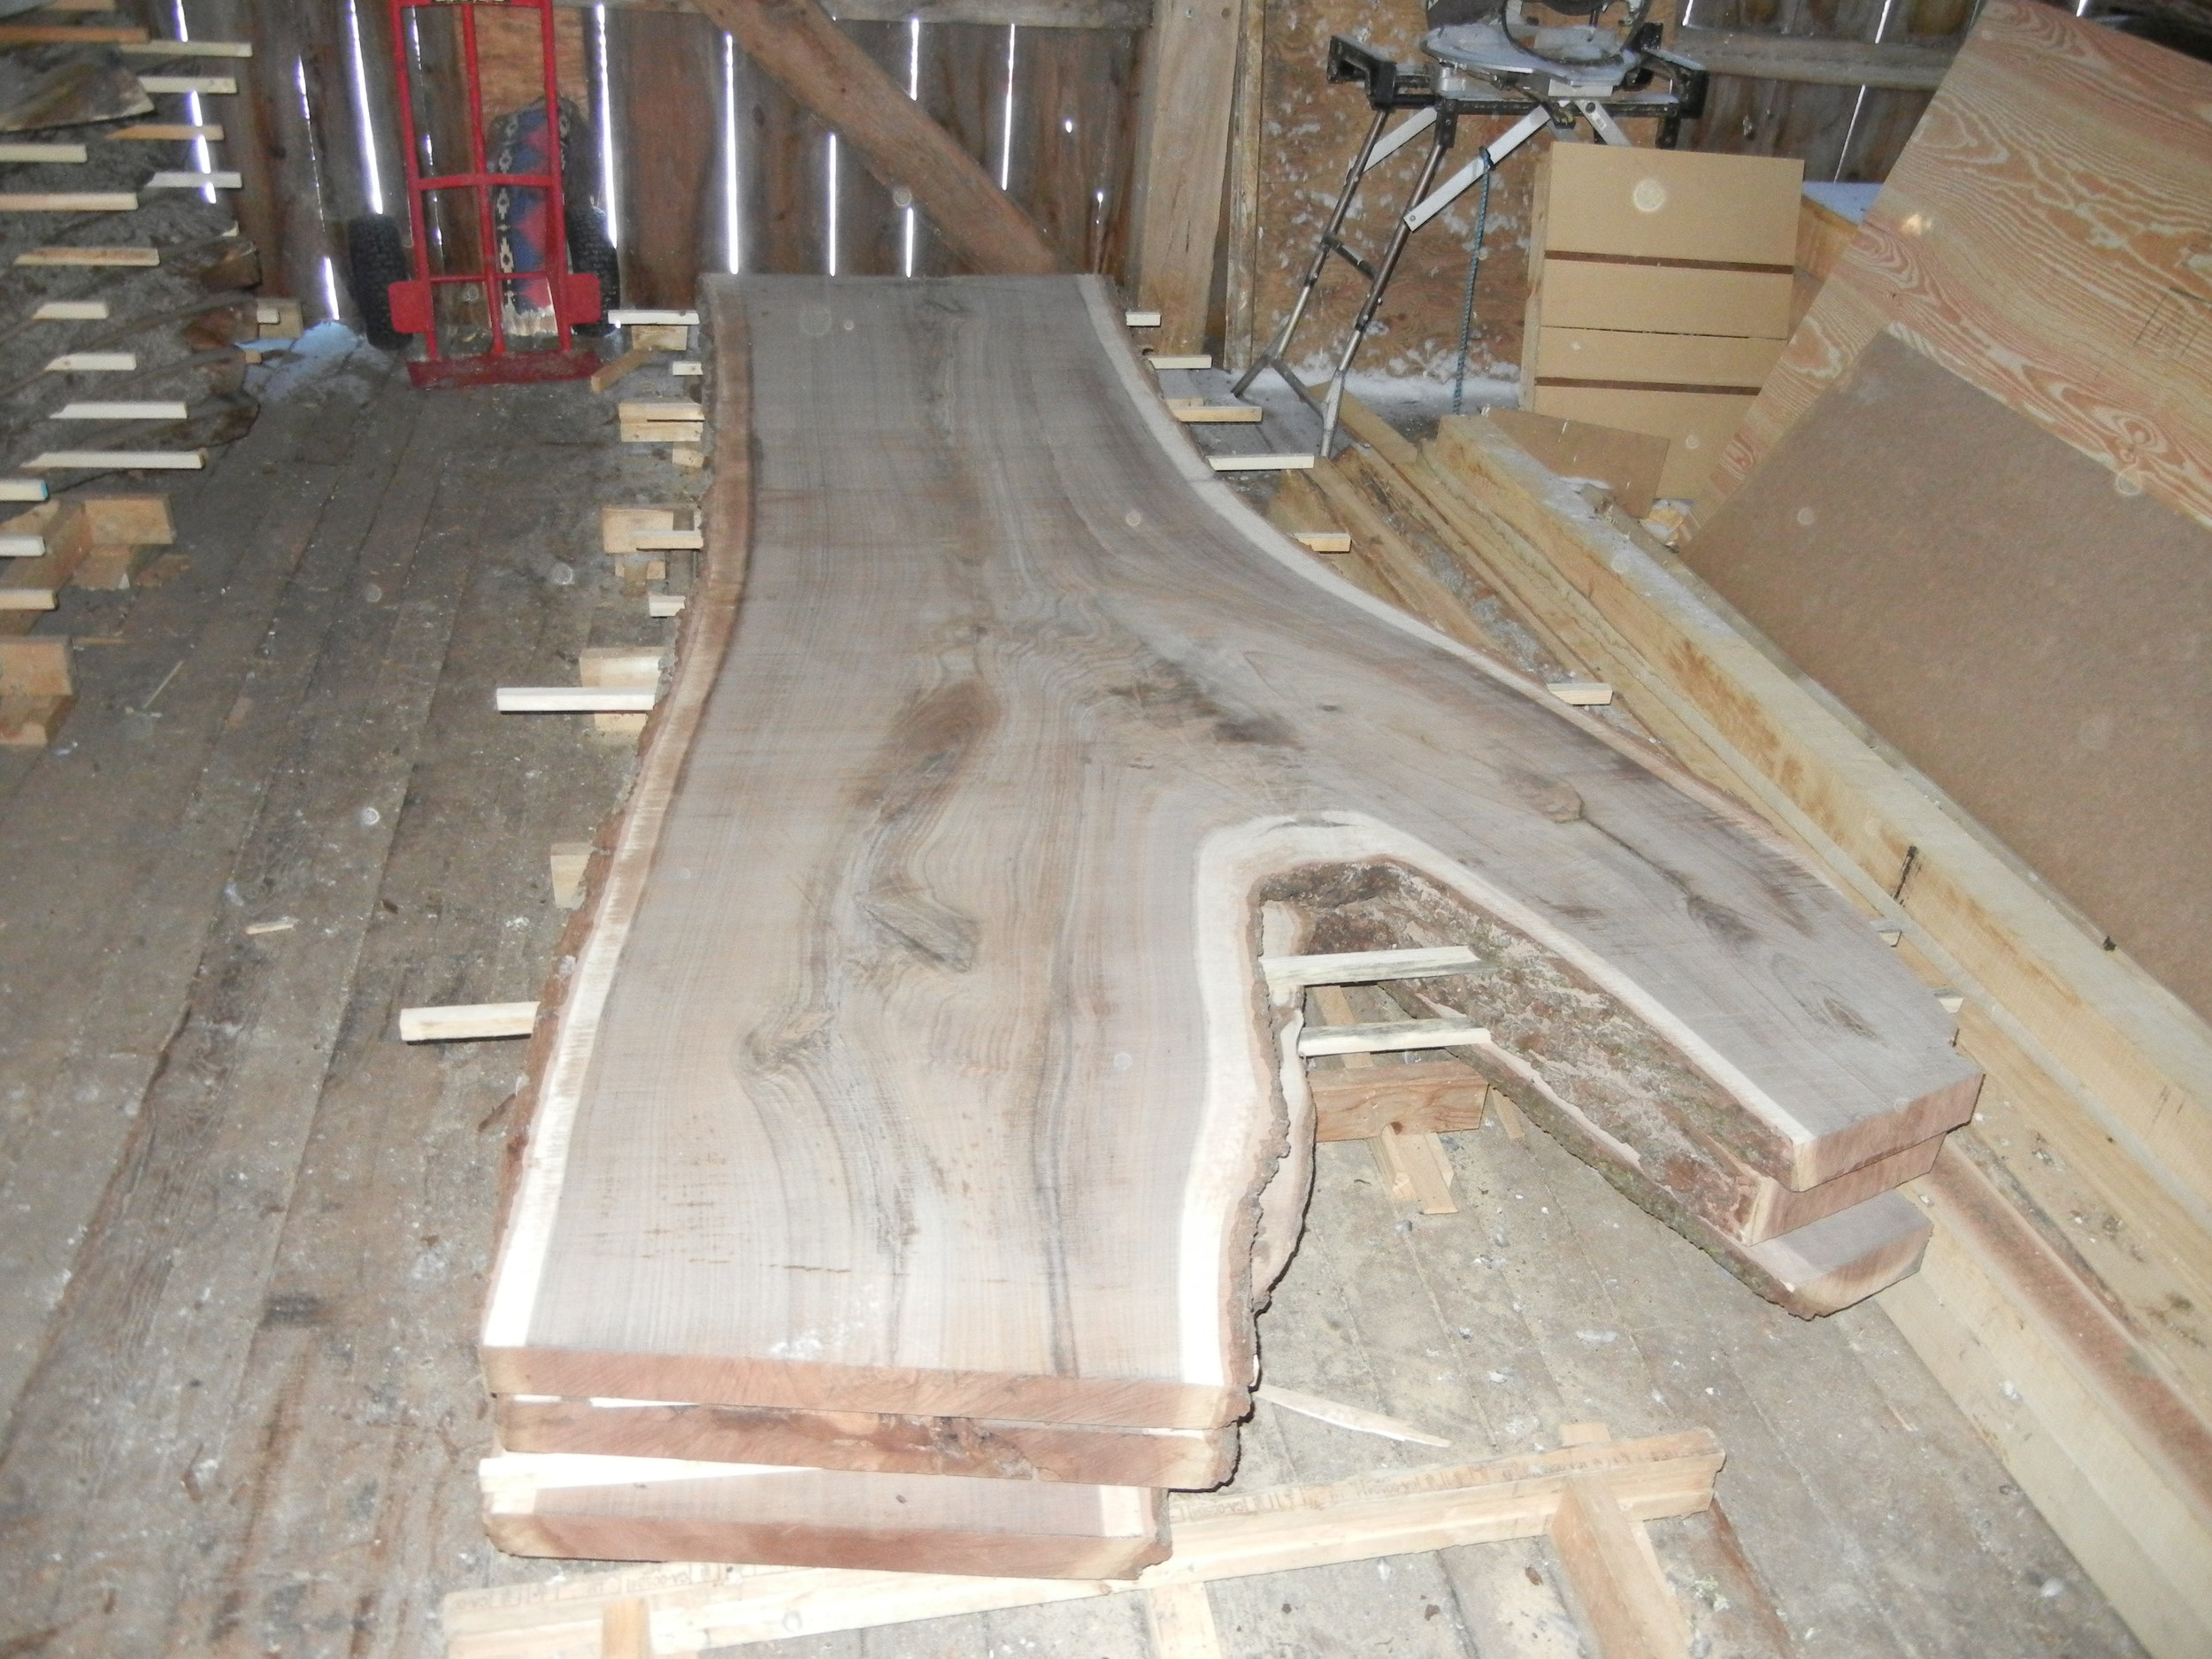 Large Black Walnut slabs being stacked for drying.